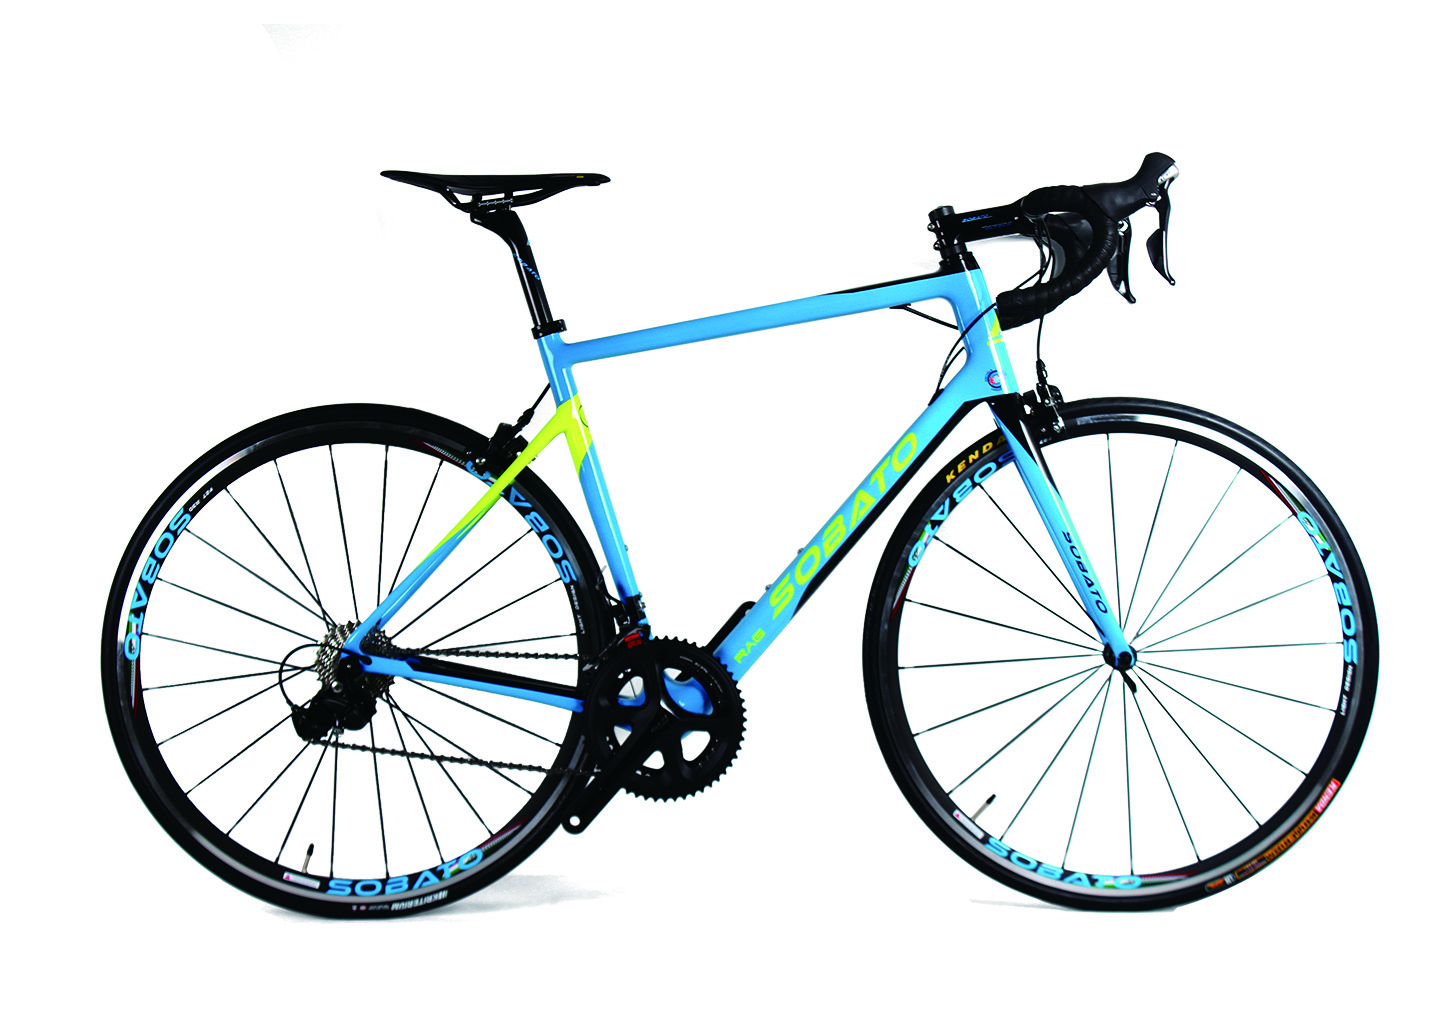 EPS TECH Endurance Carbon Road Bike Frame with super light weight